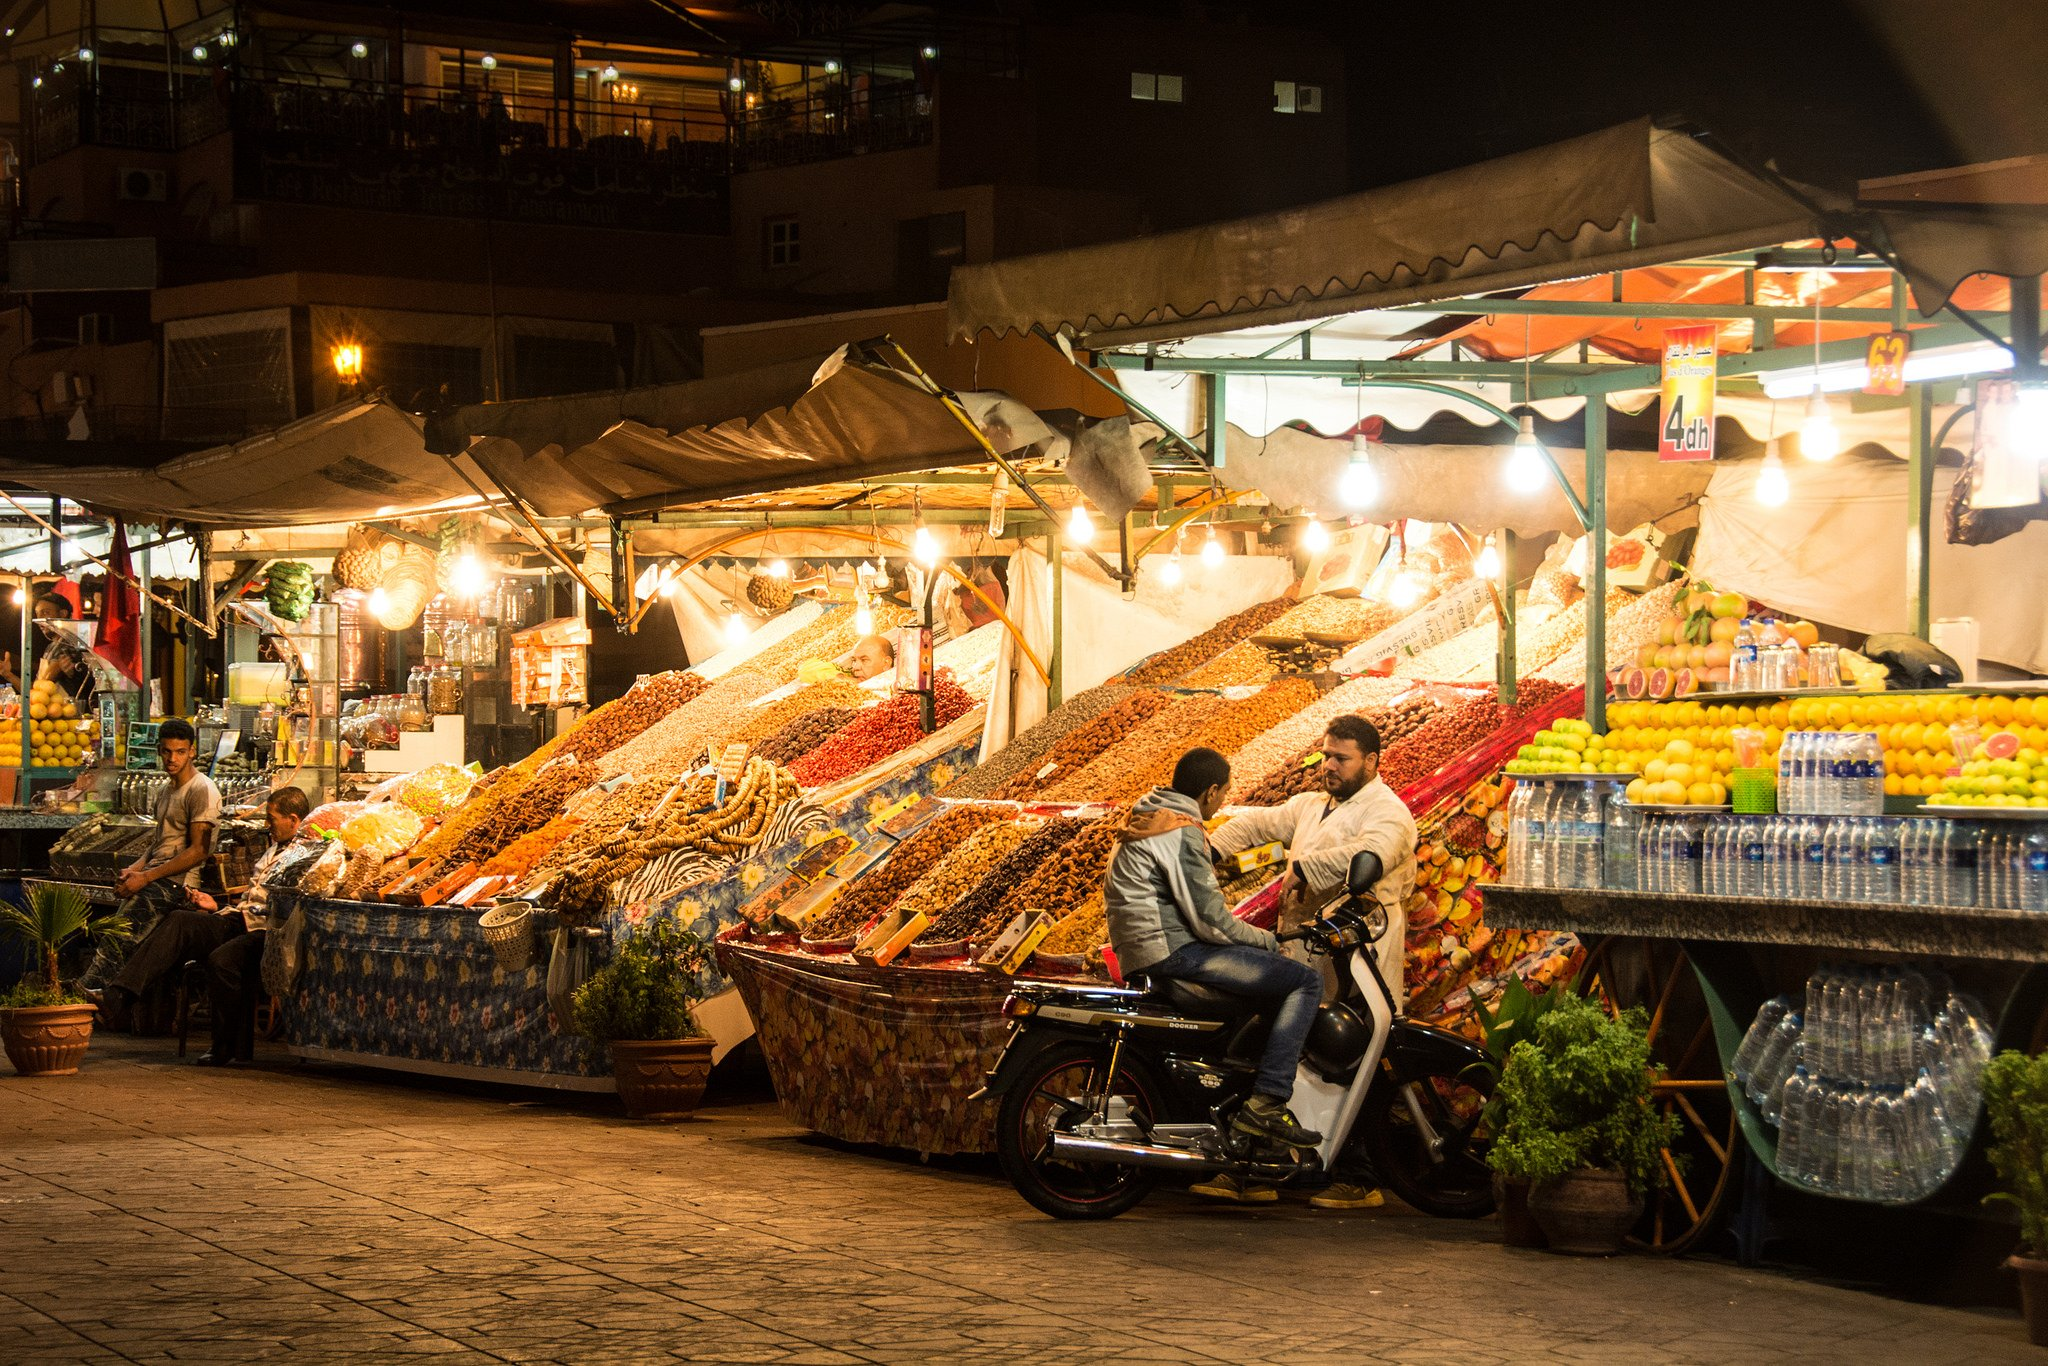 What is baksheesh and where is it found? - Men standing in the Jeema el-Fnaa bazaar at night in Marrakesh, Morocco - Lost With Purpose